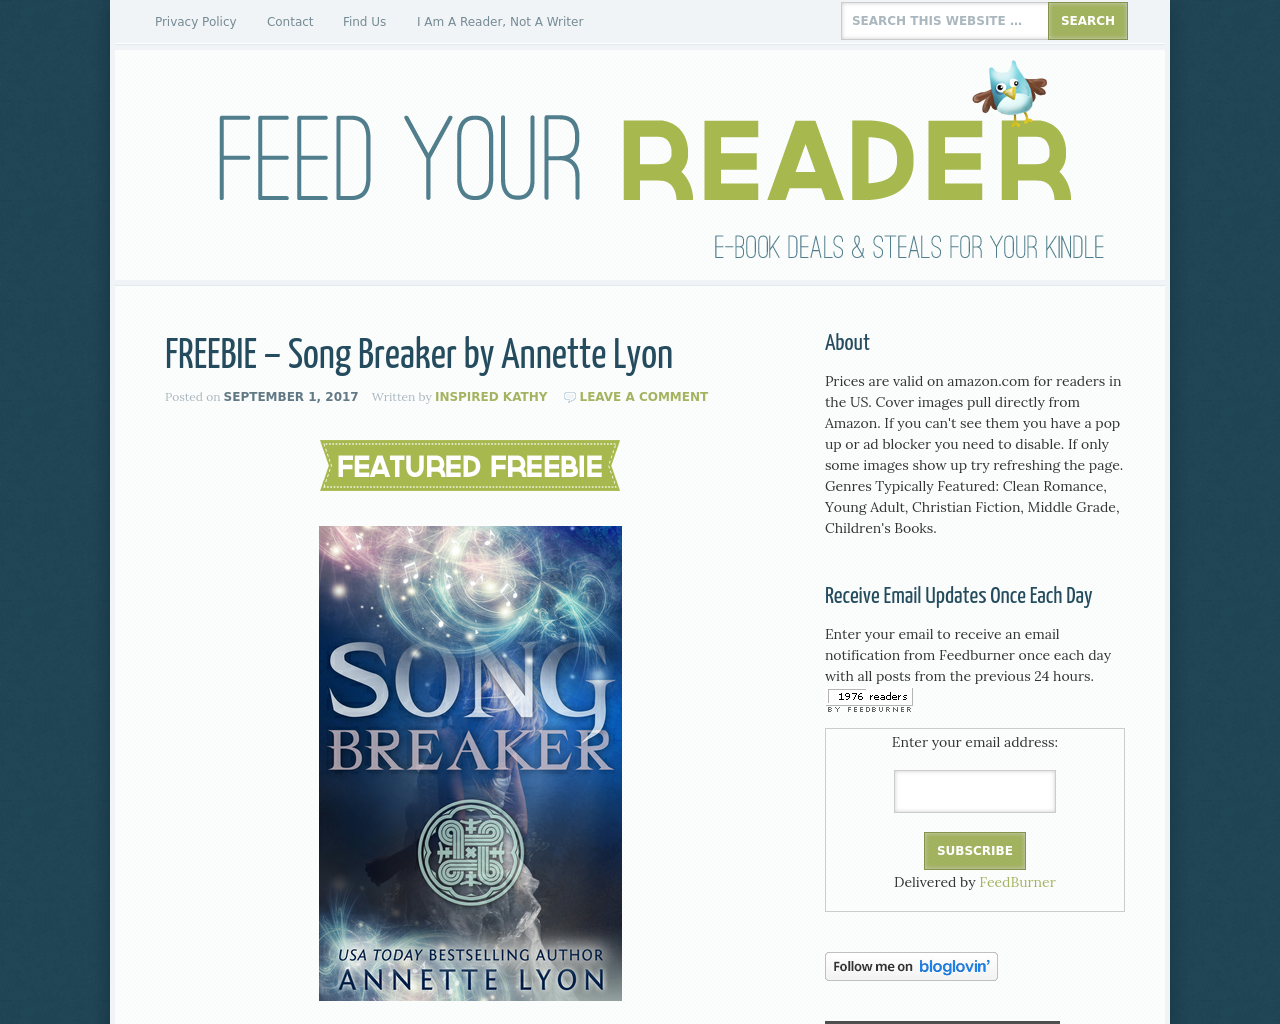 Feed-Your-Reader-Advertising-Reviews-Pricing